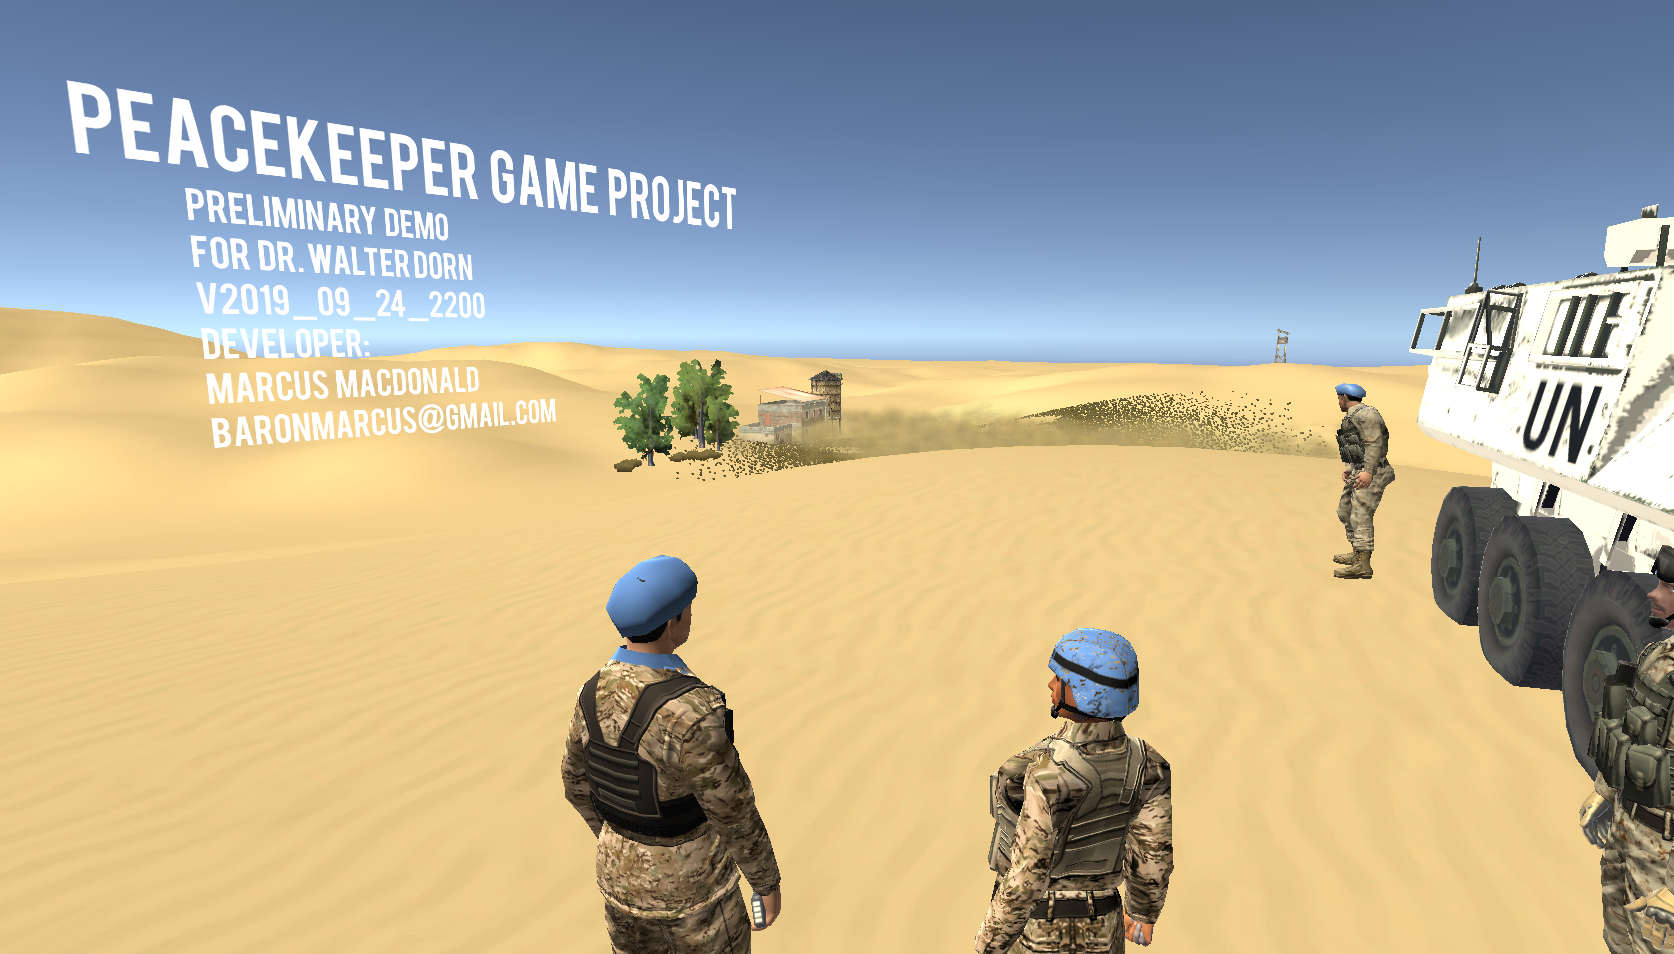 PeacekeeperGameProj_OpeningScene_withTitle